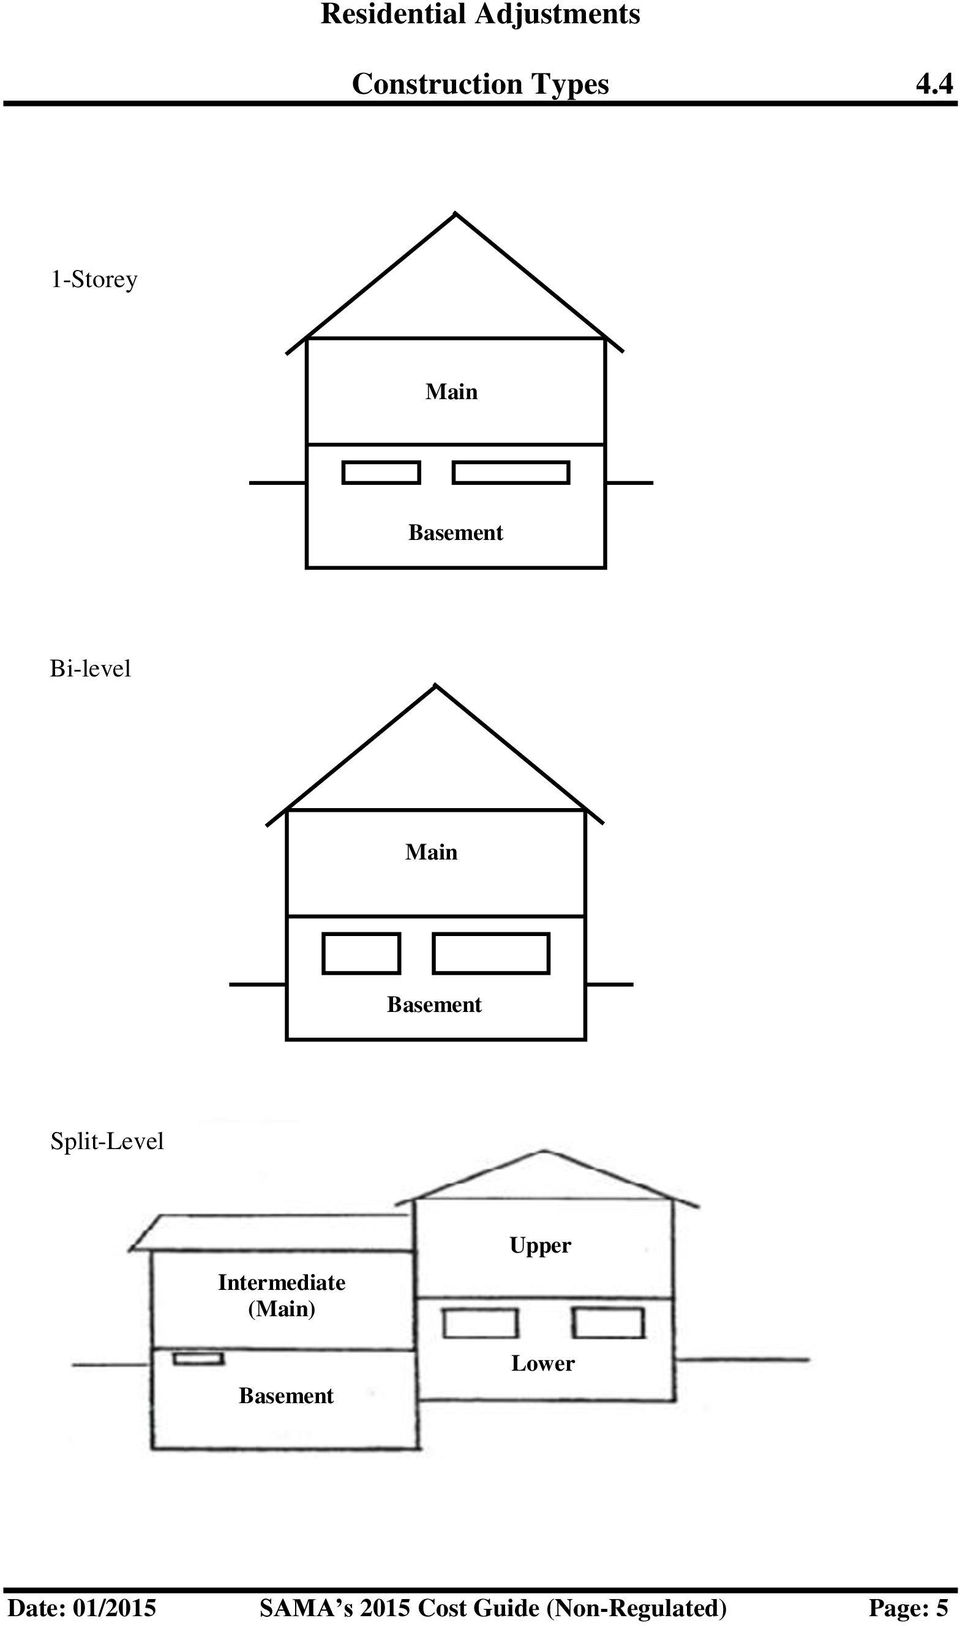 Basement Split-Level Intermediate (Main)